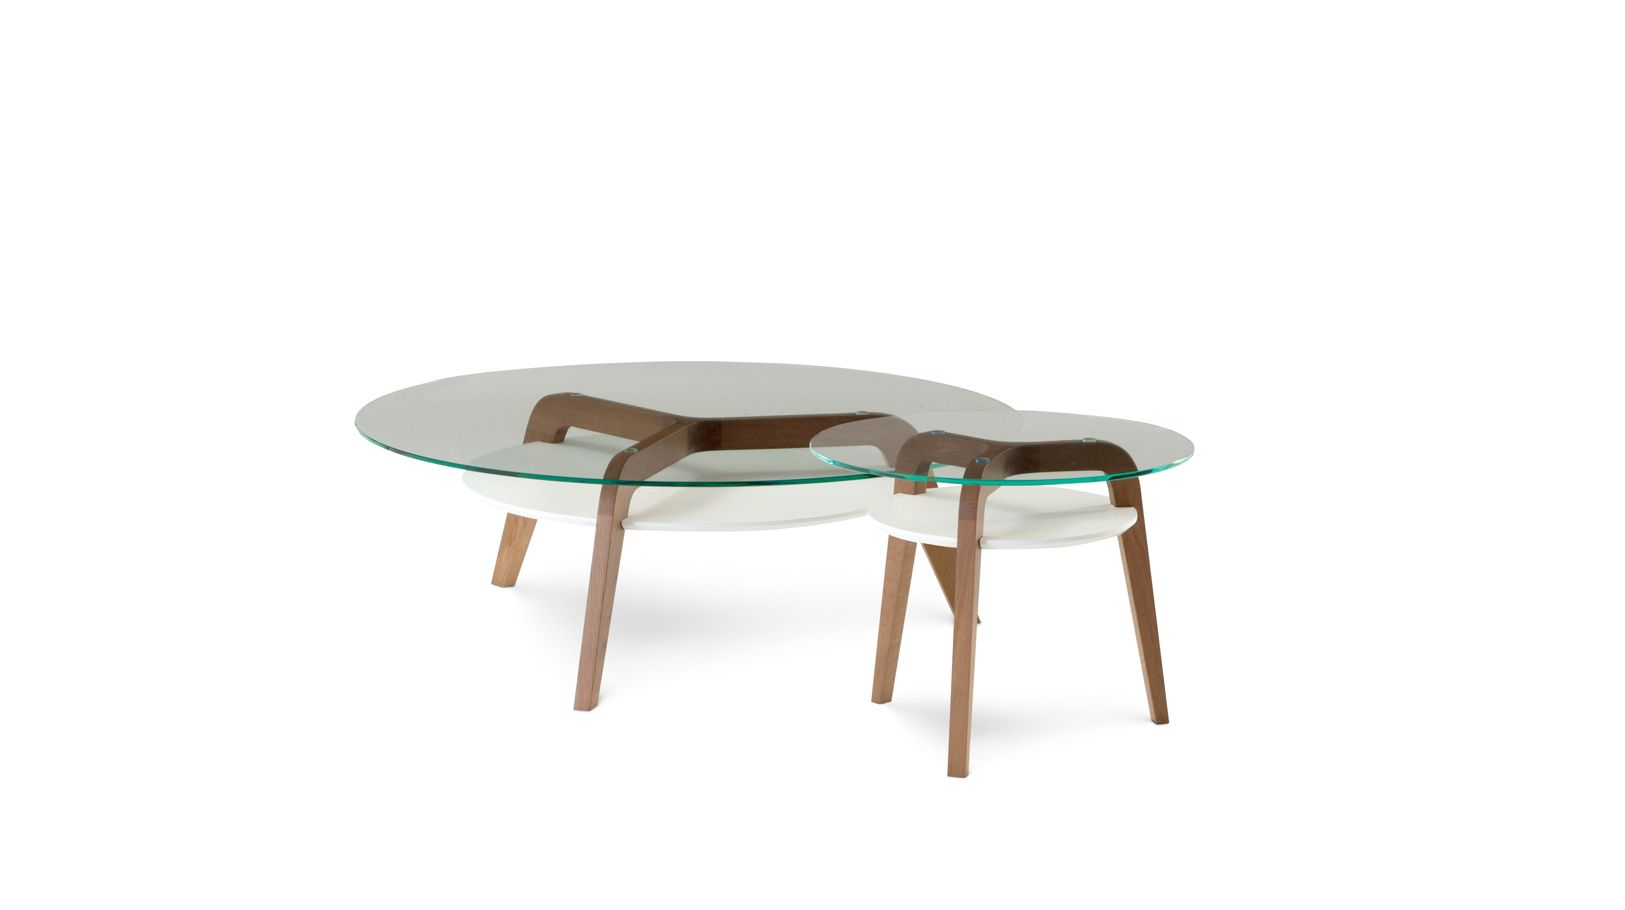 Flying glass cocktail table roche bobois - Table basse vitree ...